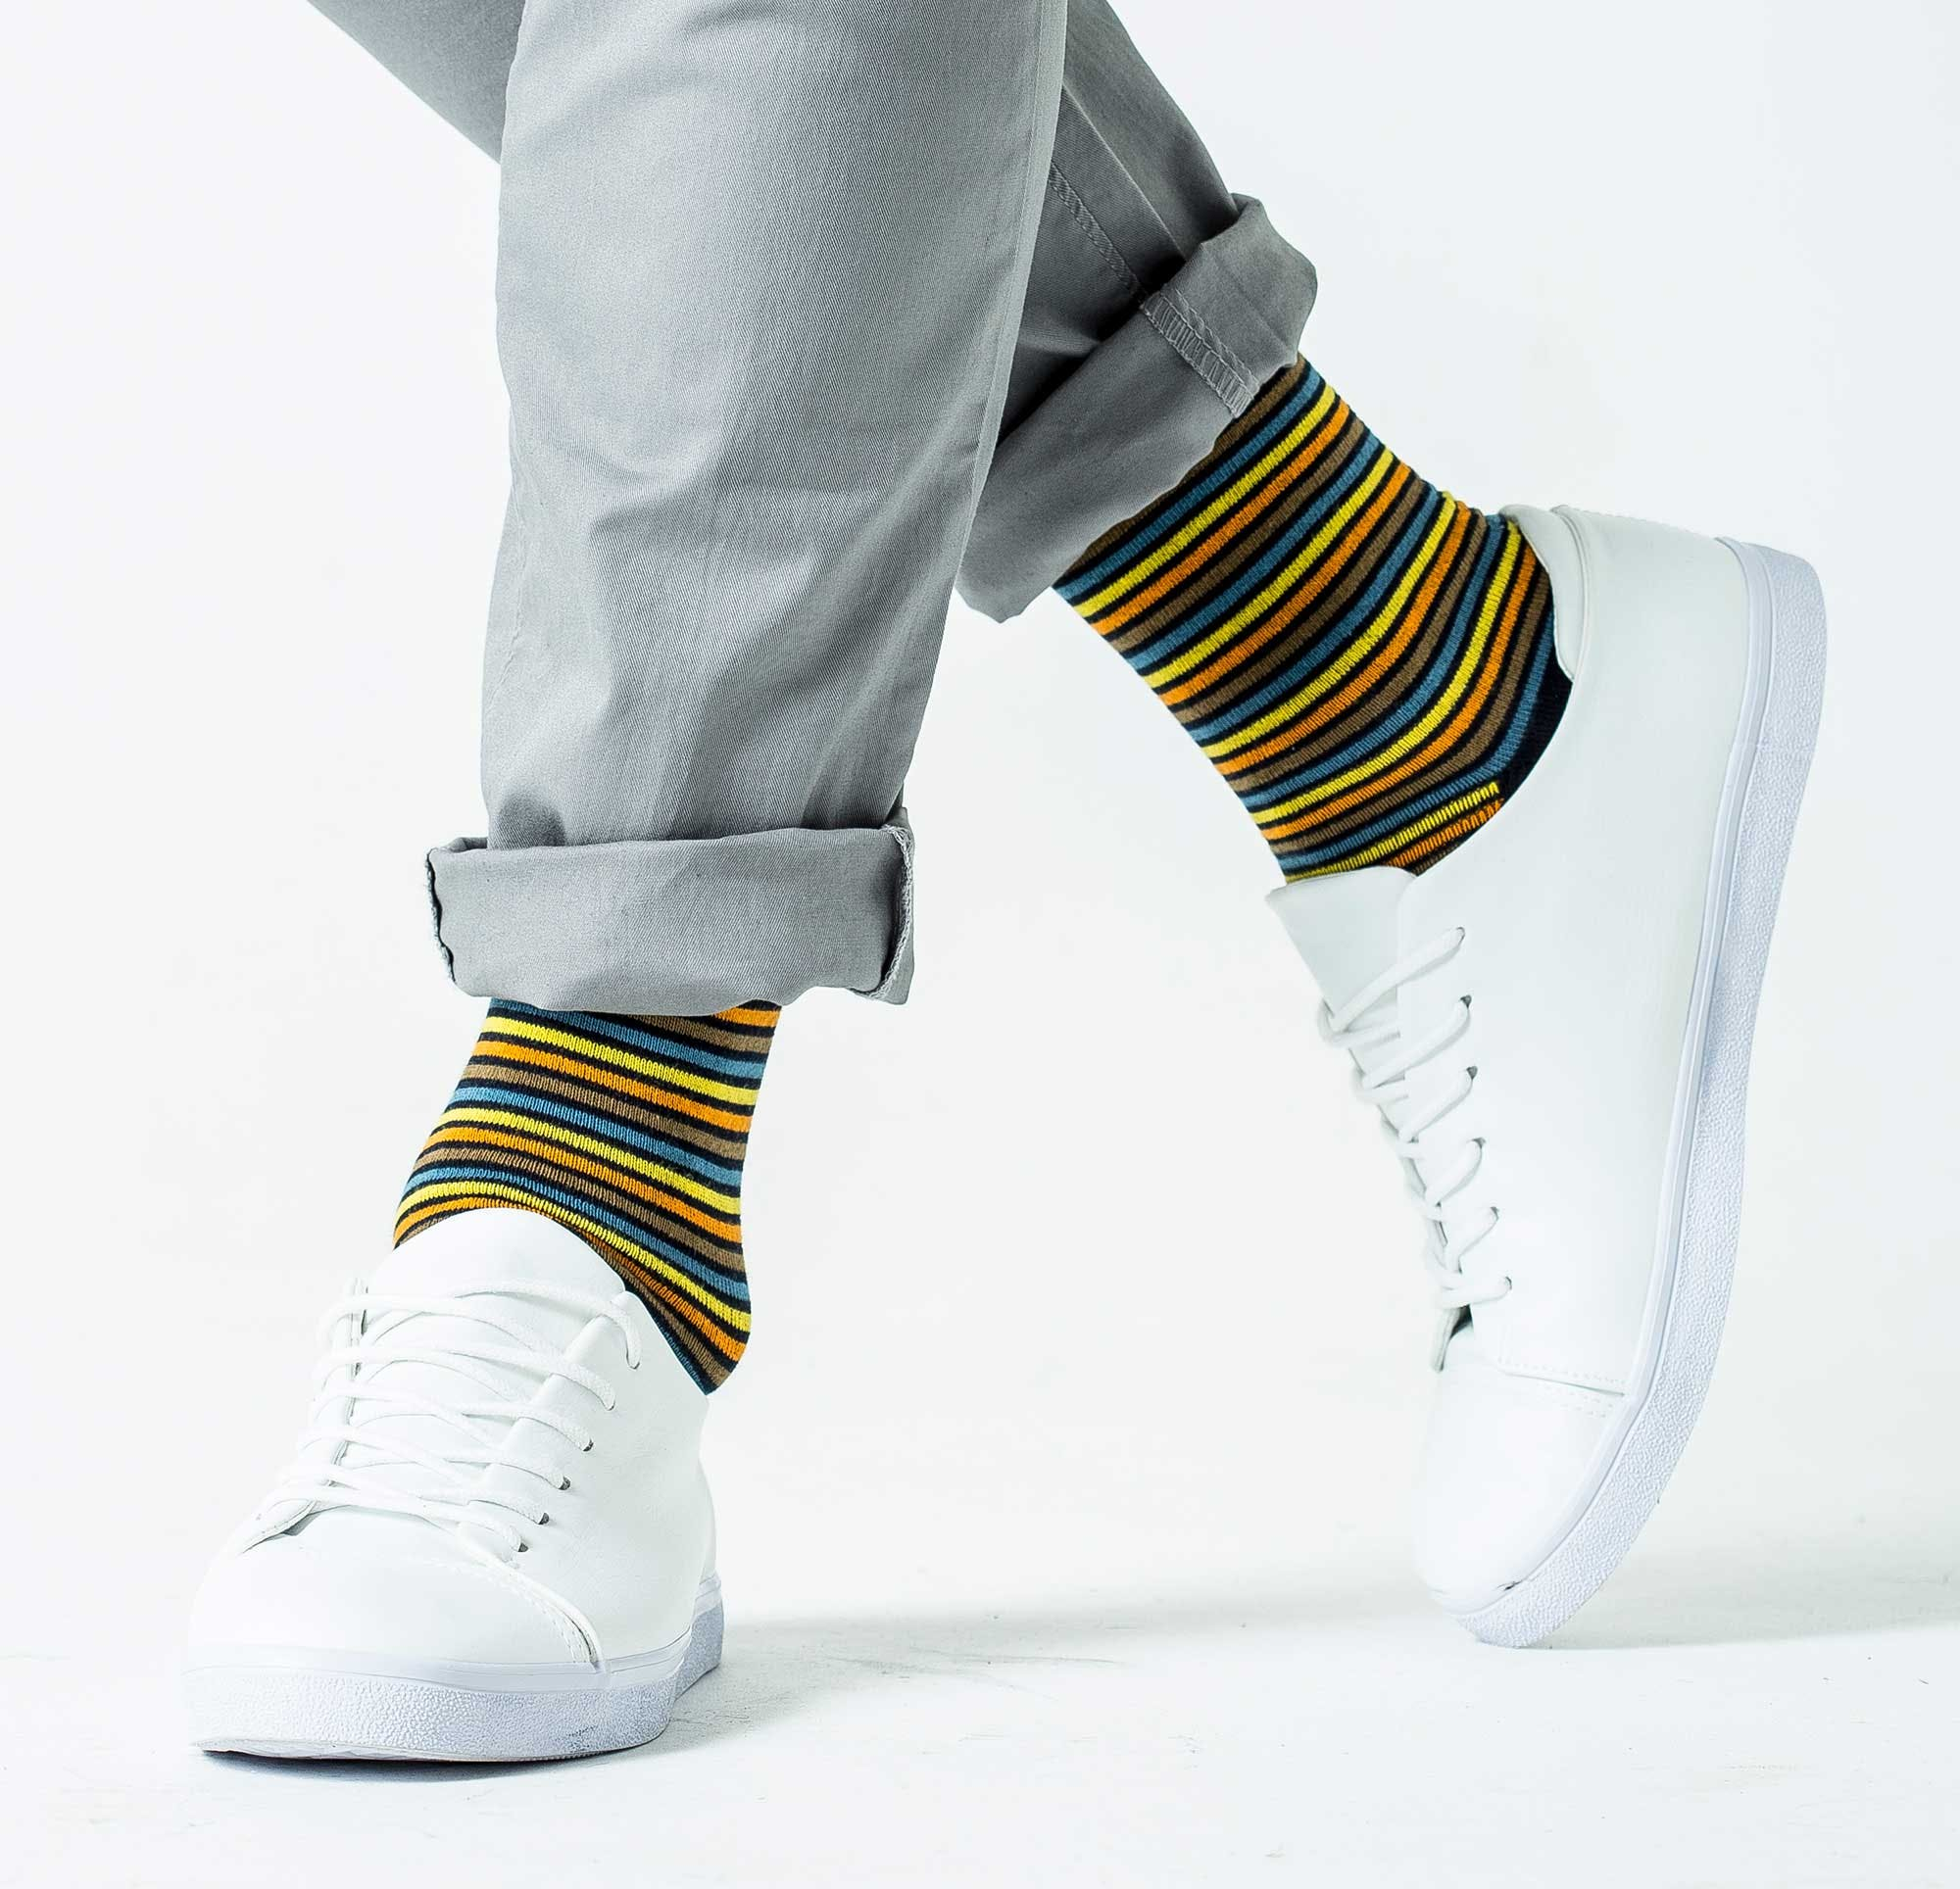 striped and patterned socks